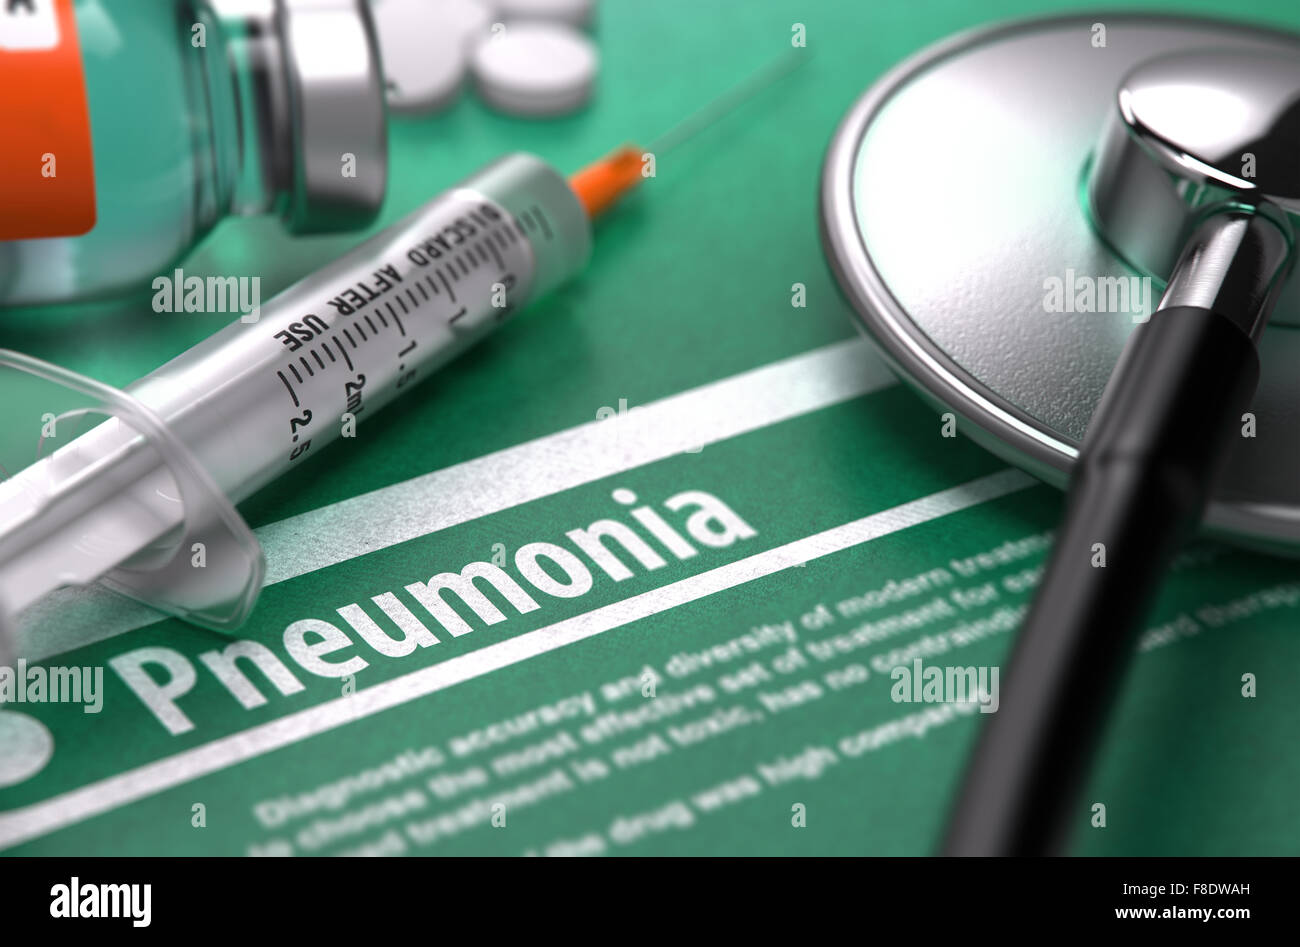 Diagnosis - Pneumonia. Medical Concept. - Stock Image